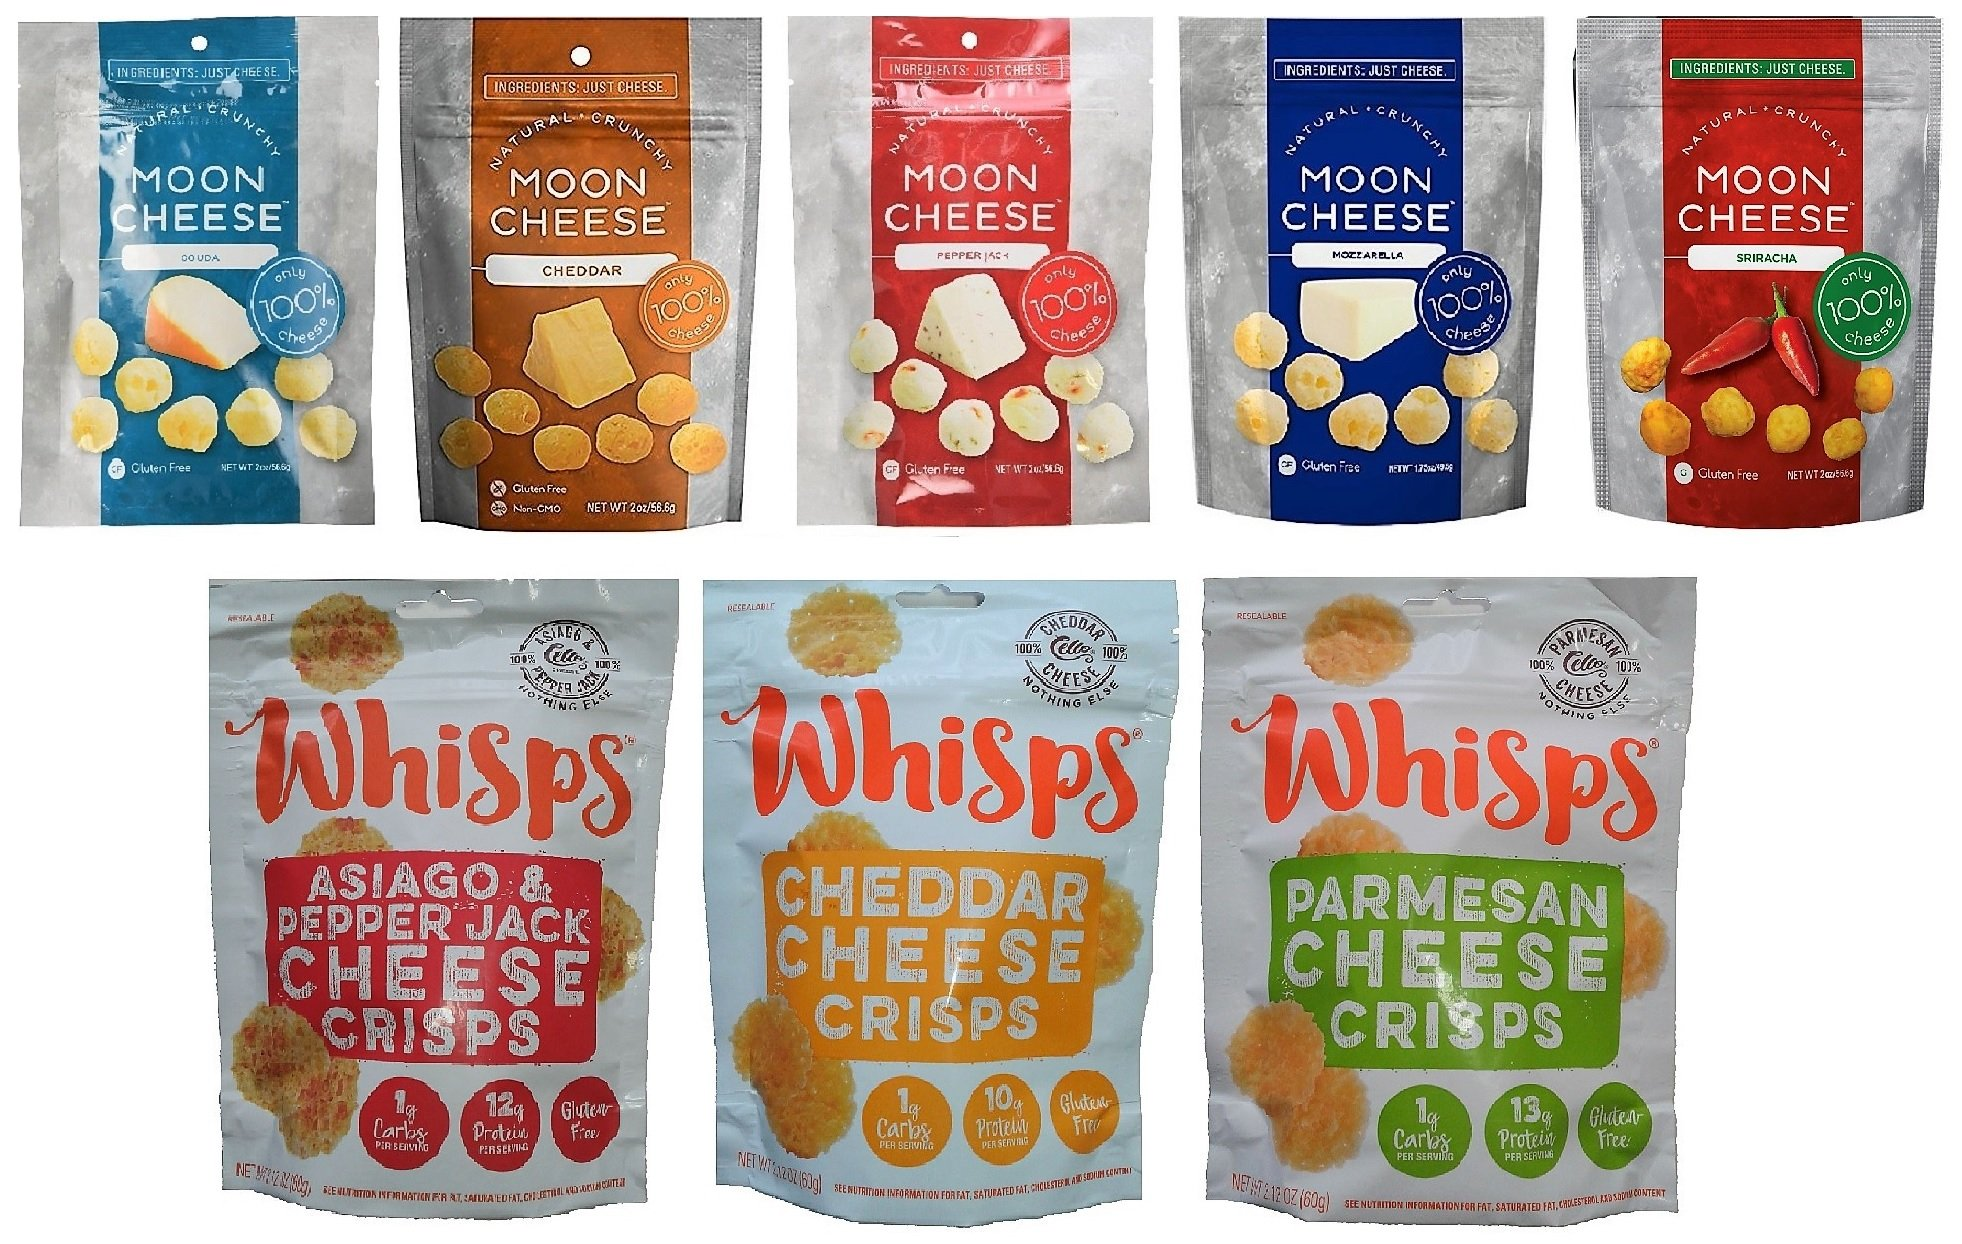 8 Pack Low Carb Crunchy Snack Assortment - Moon Cheese (5 flavors) and Cello Whisps Crisps (3 flavors) by Moon Cheese